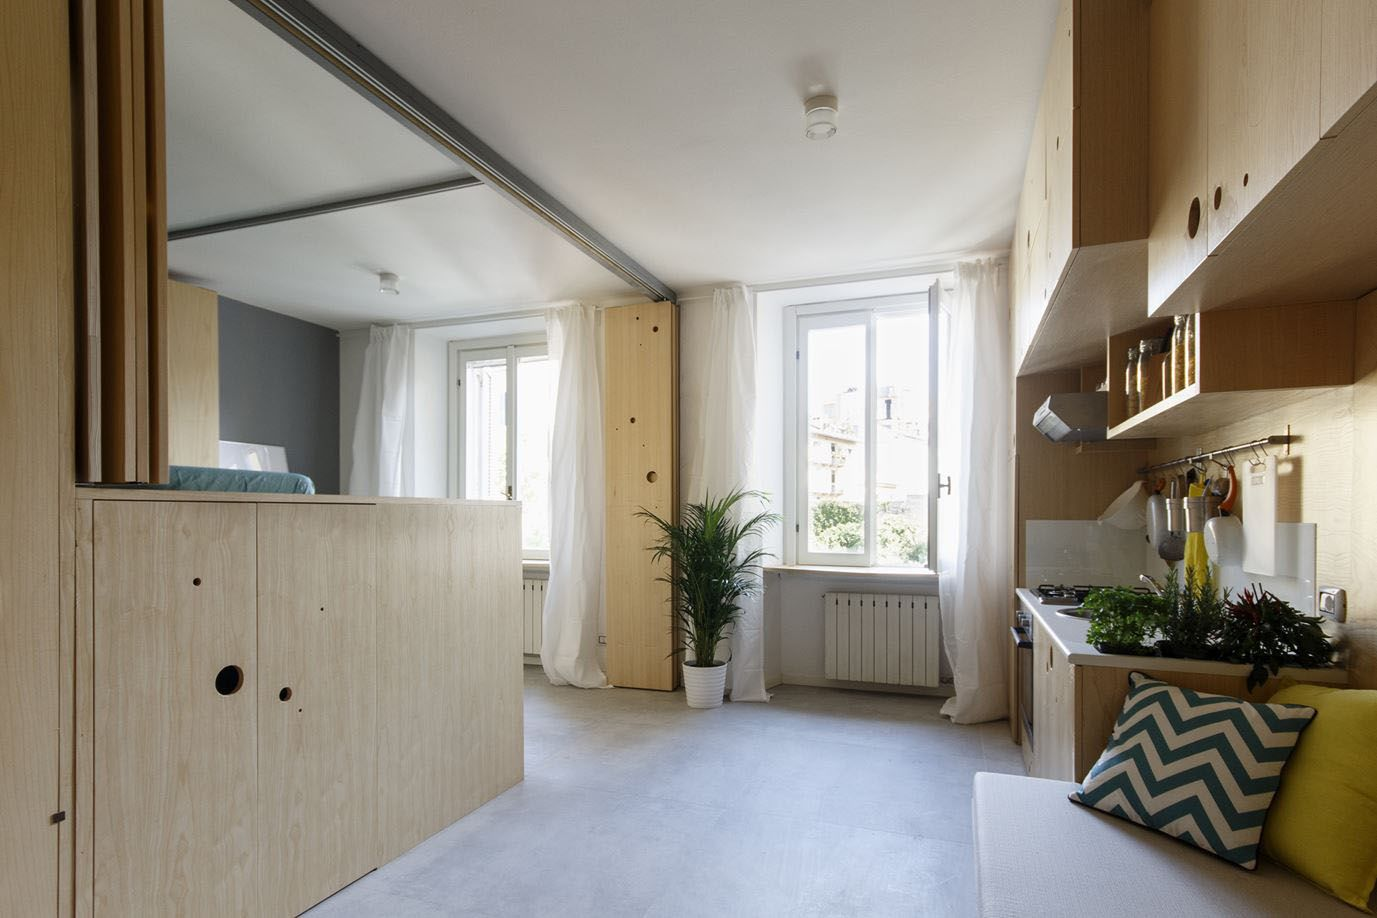 Small Studio Apartment With A Clever Movable Partition System Idesignarch Interior Design Architecture Interior Decorating Emagazine Apartment Interior Apartment Interior Design Tiny Living Italy small bedroom apartment